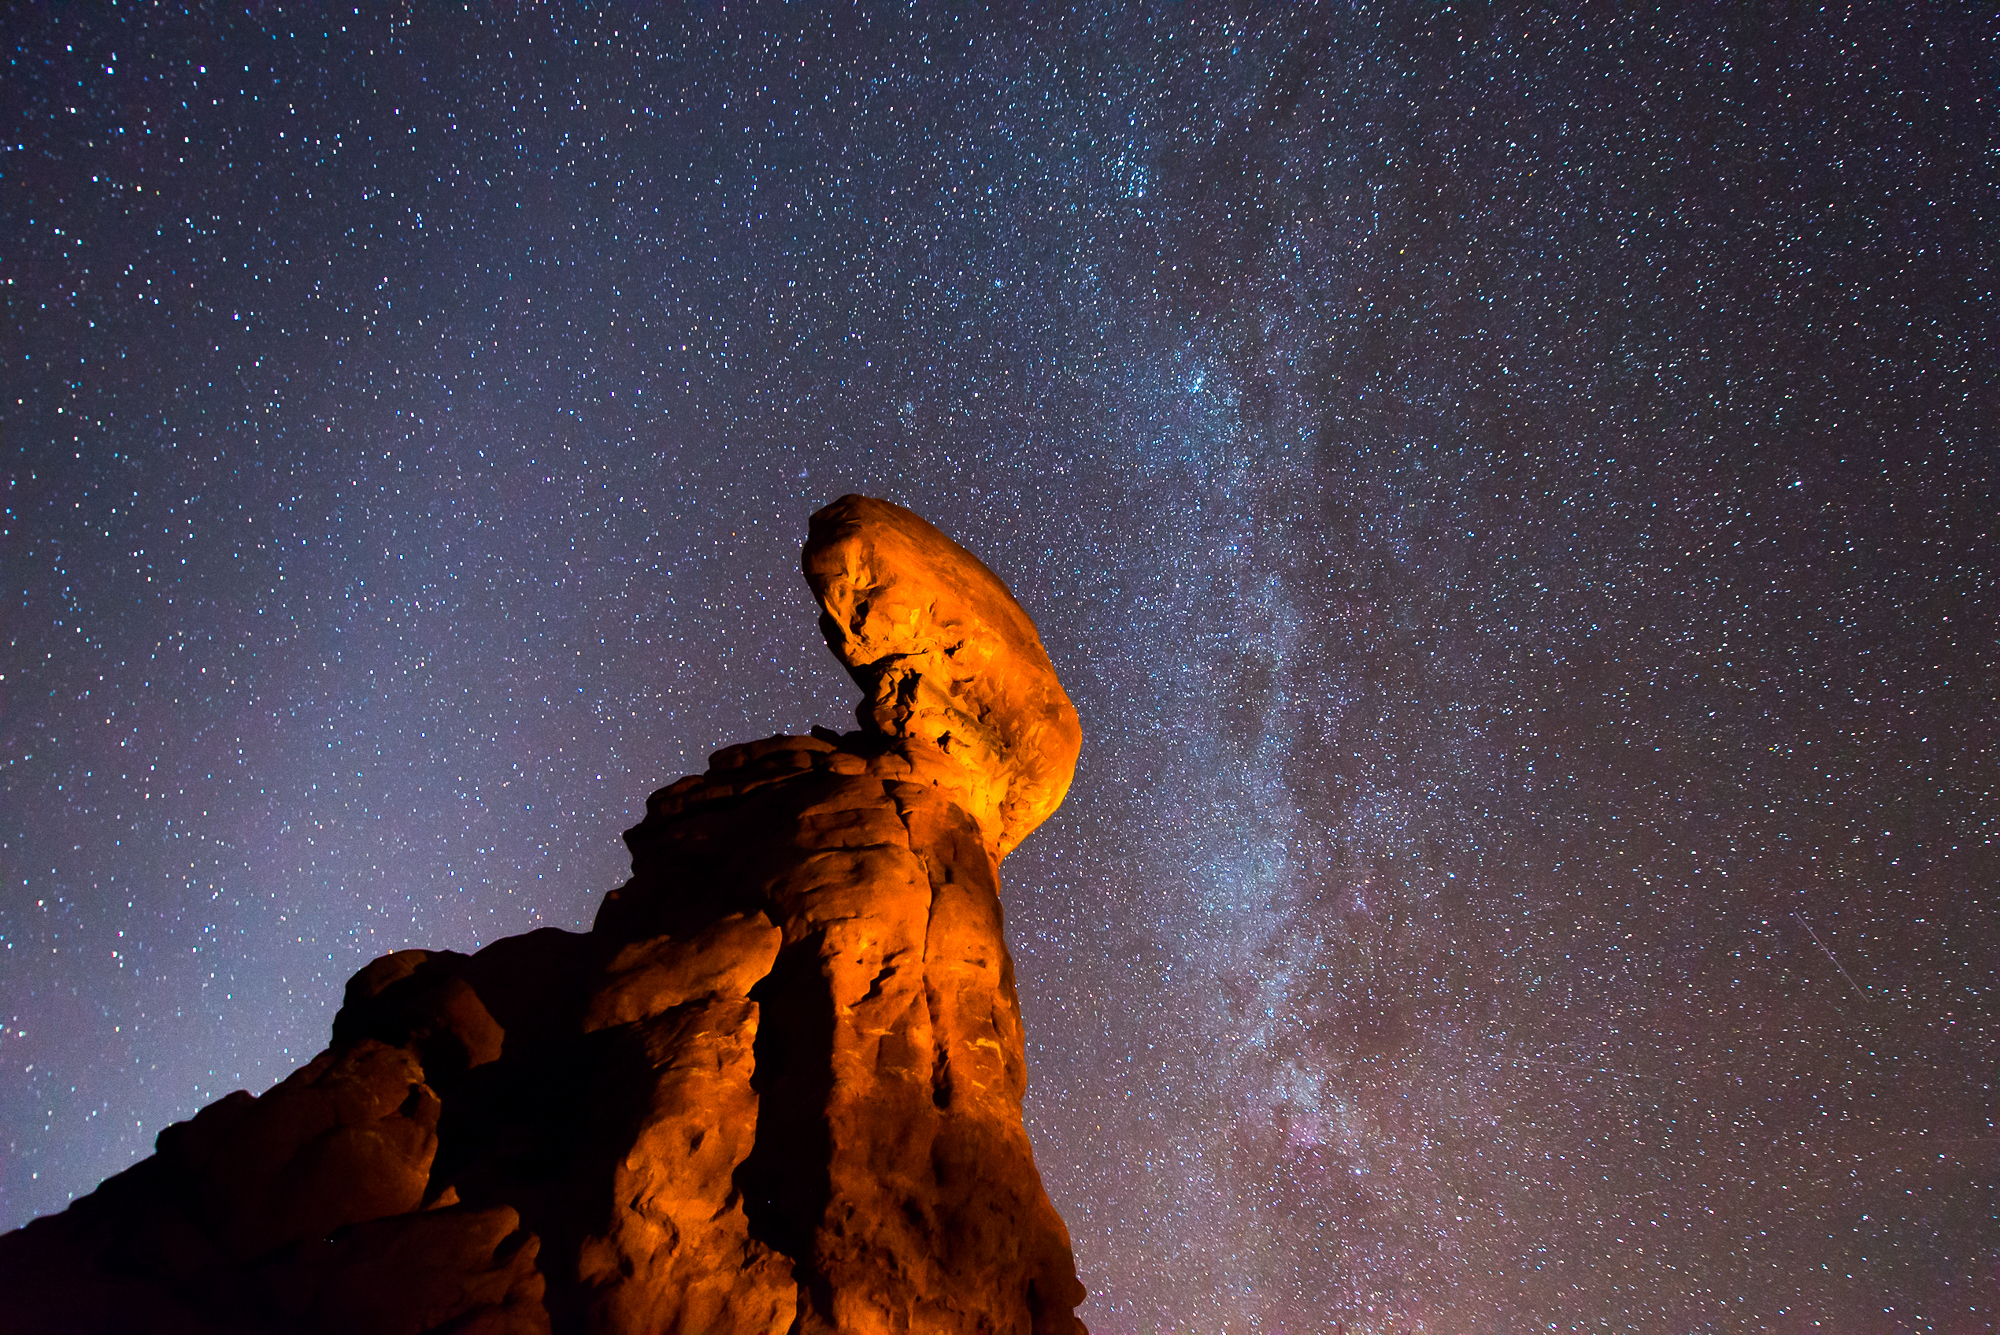 Balanced Rock and the Milky Way, Arches National Park